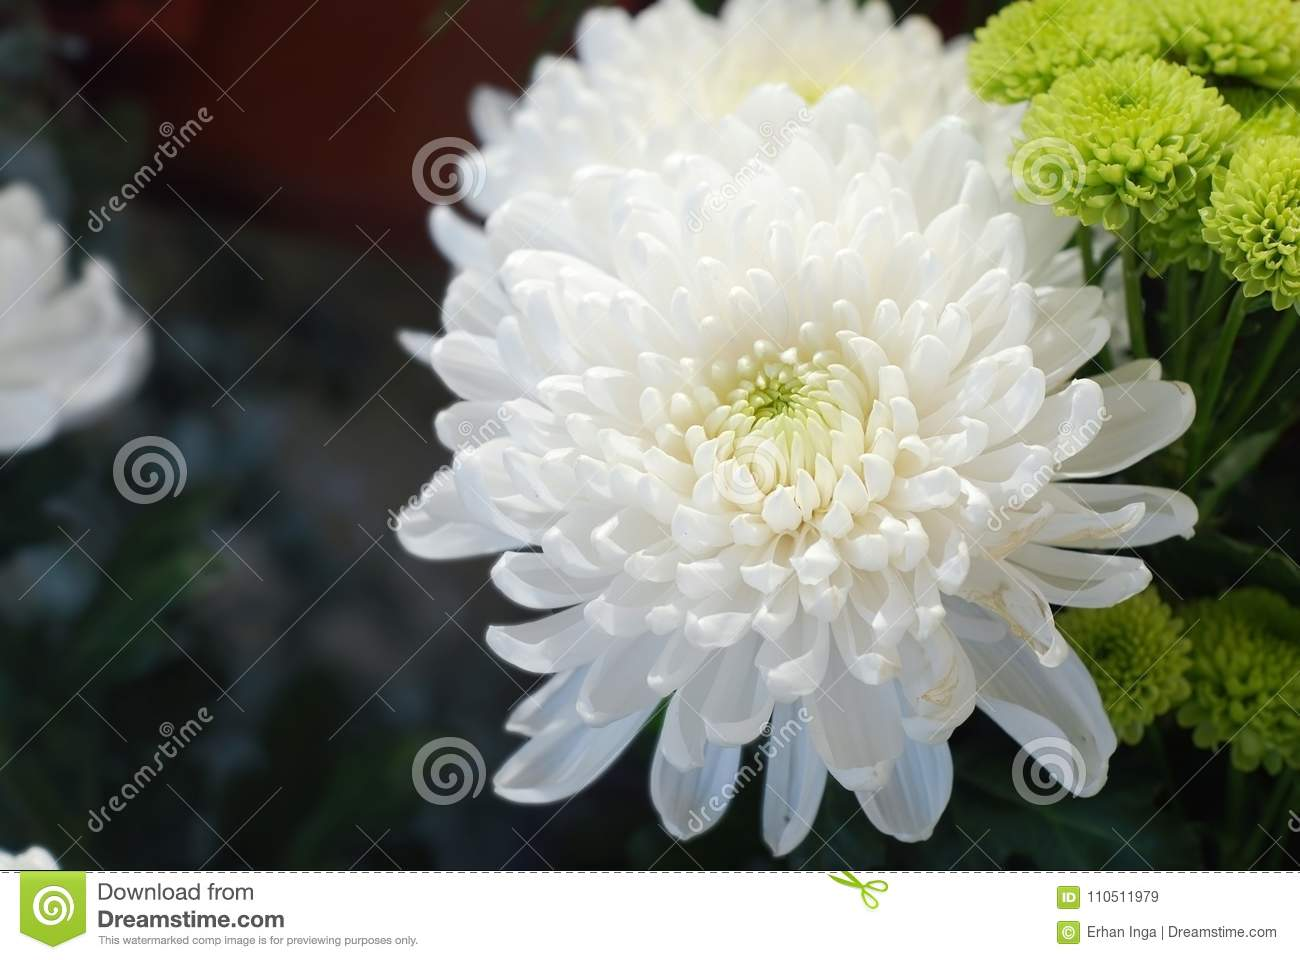 White Fresh Flowers Crisanthemum Close Up With Copy Space For Text